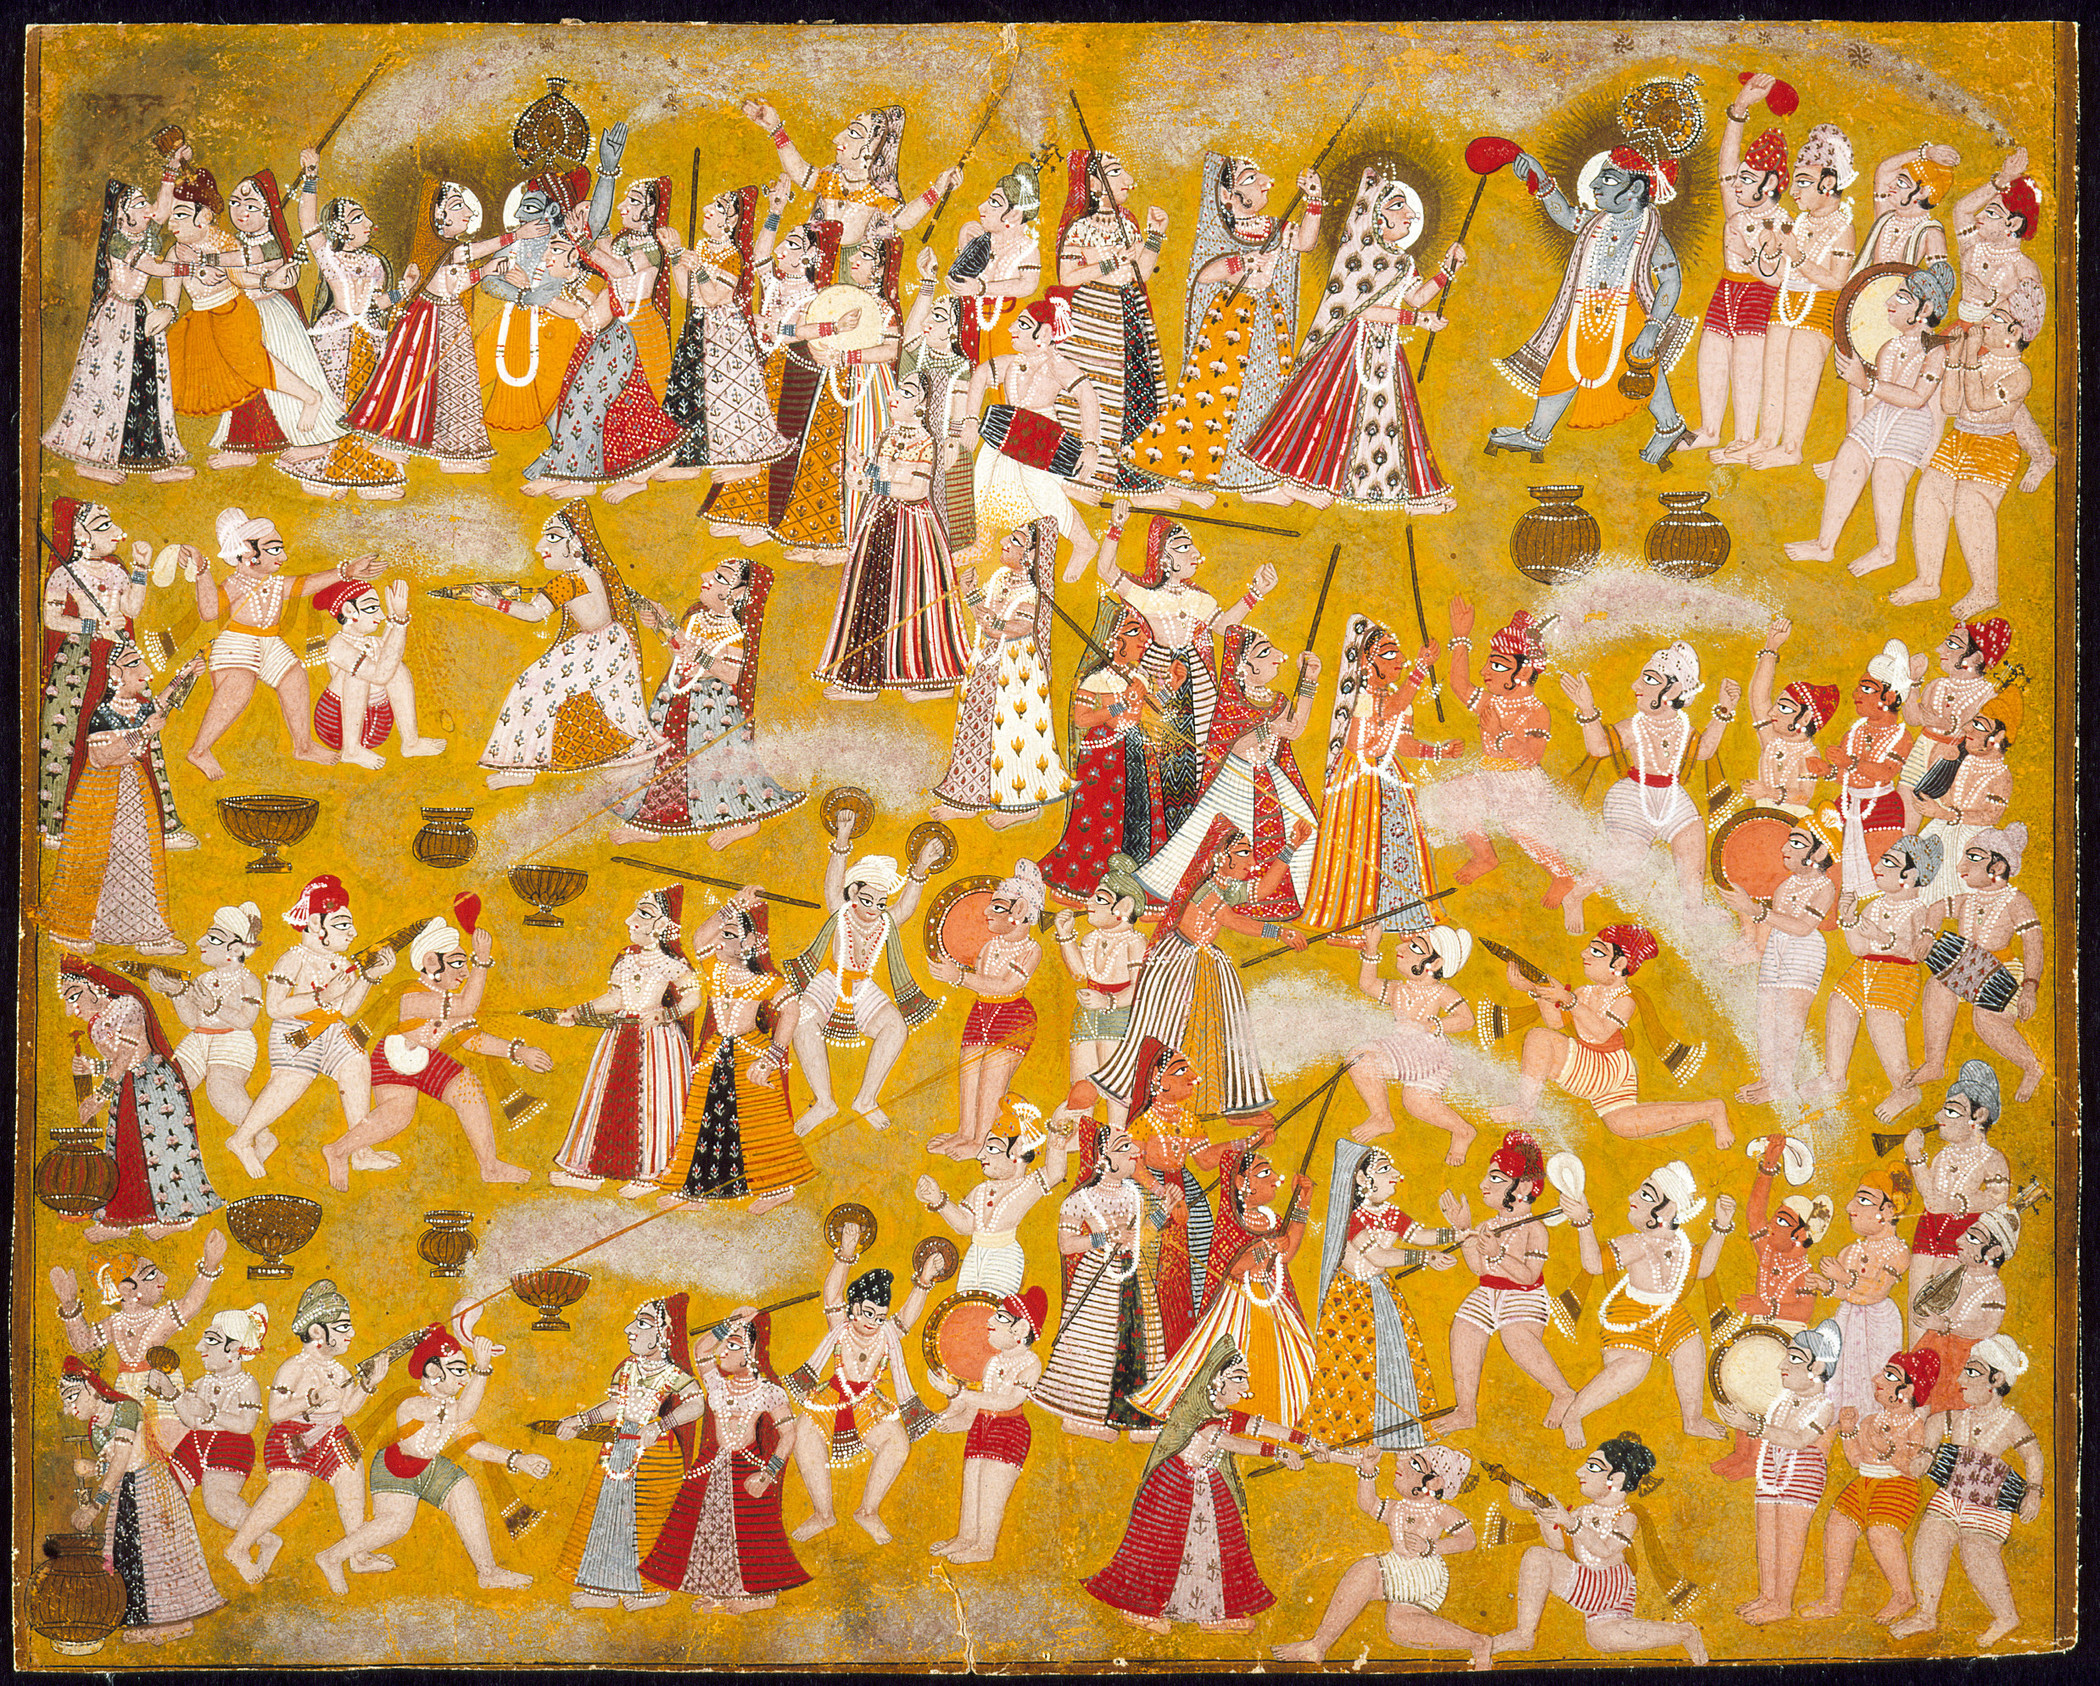 Krishna and Radha Celebrating the Holi Festival with Companions - India, Rajasthan, Marwar, circa 1750